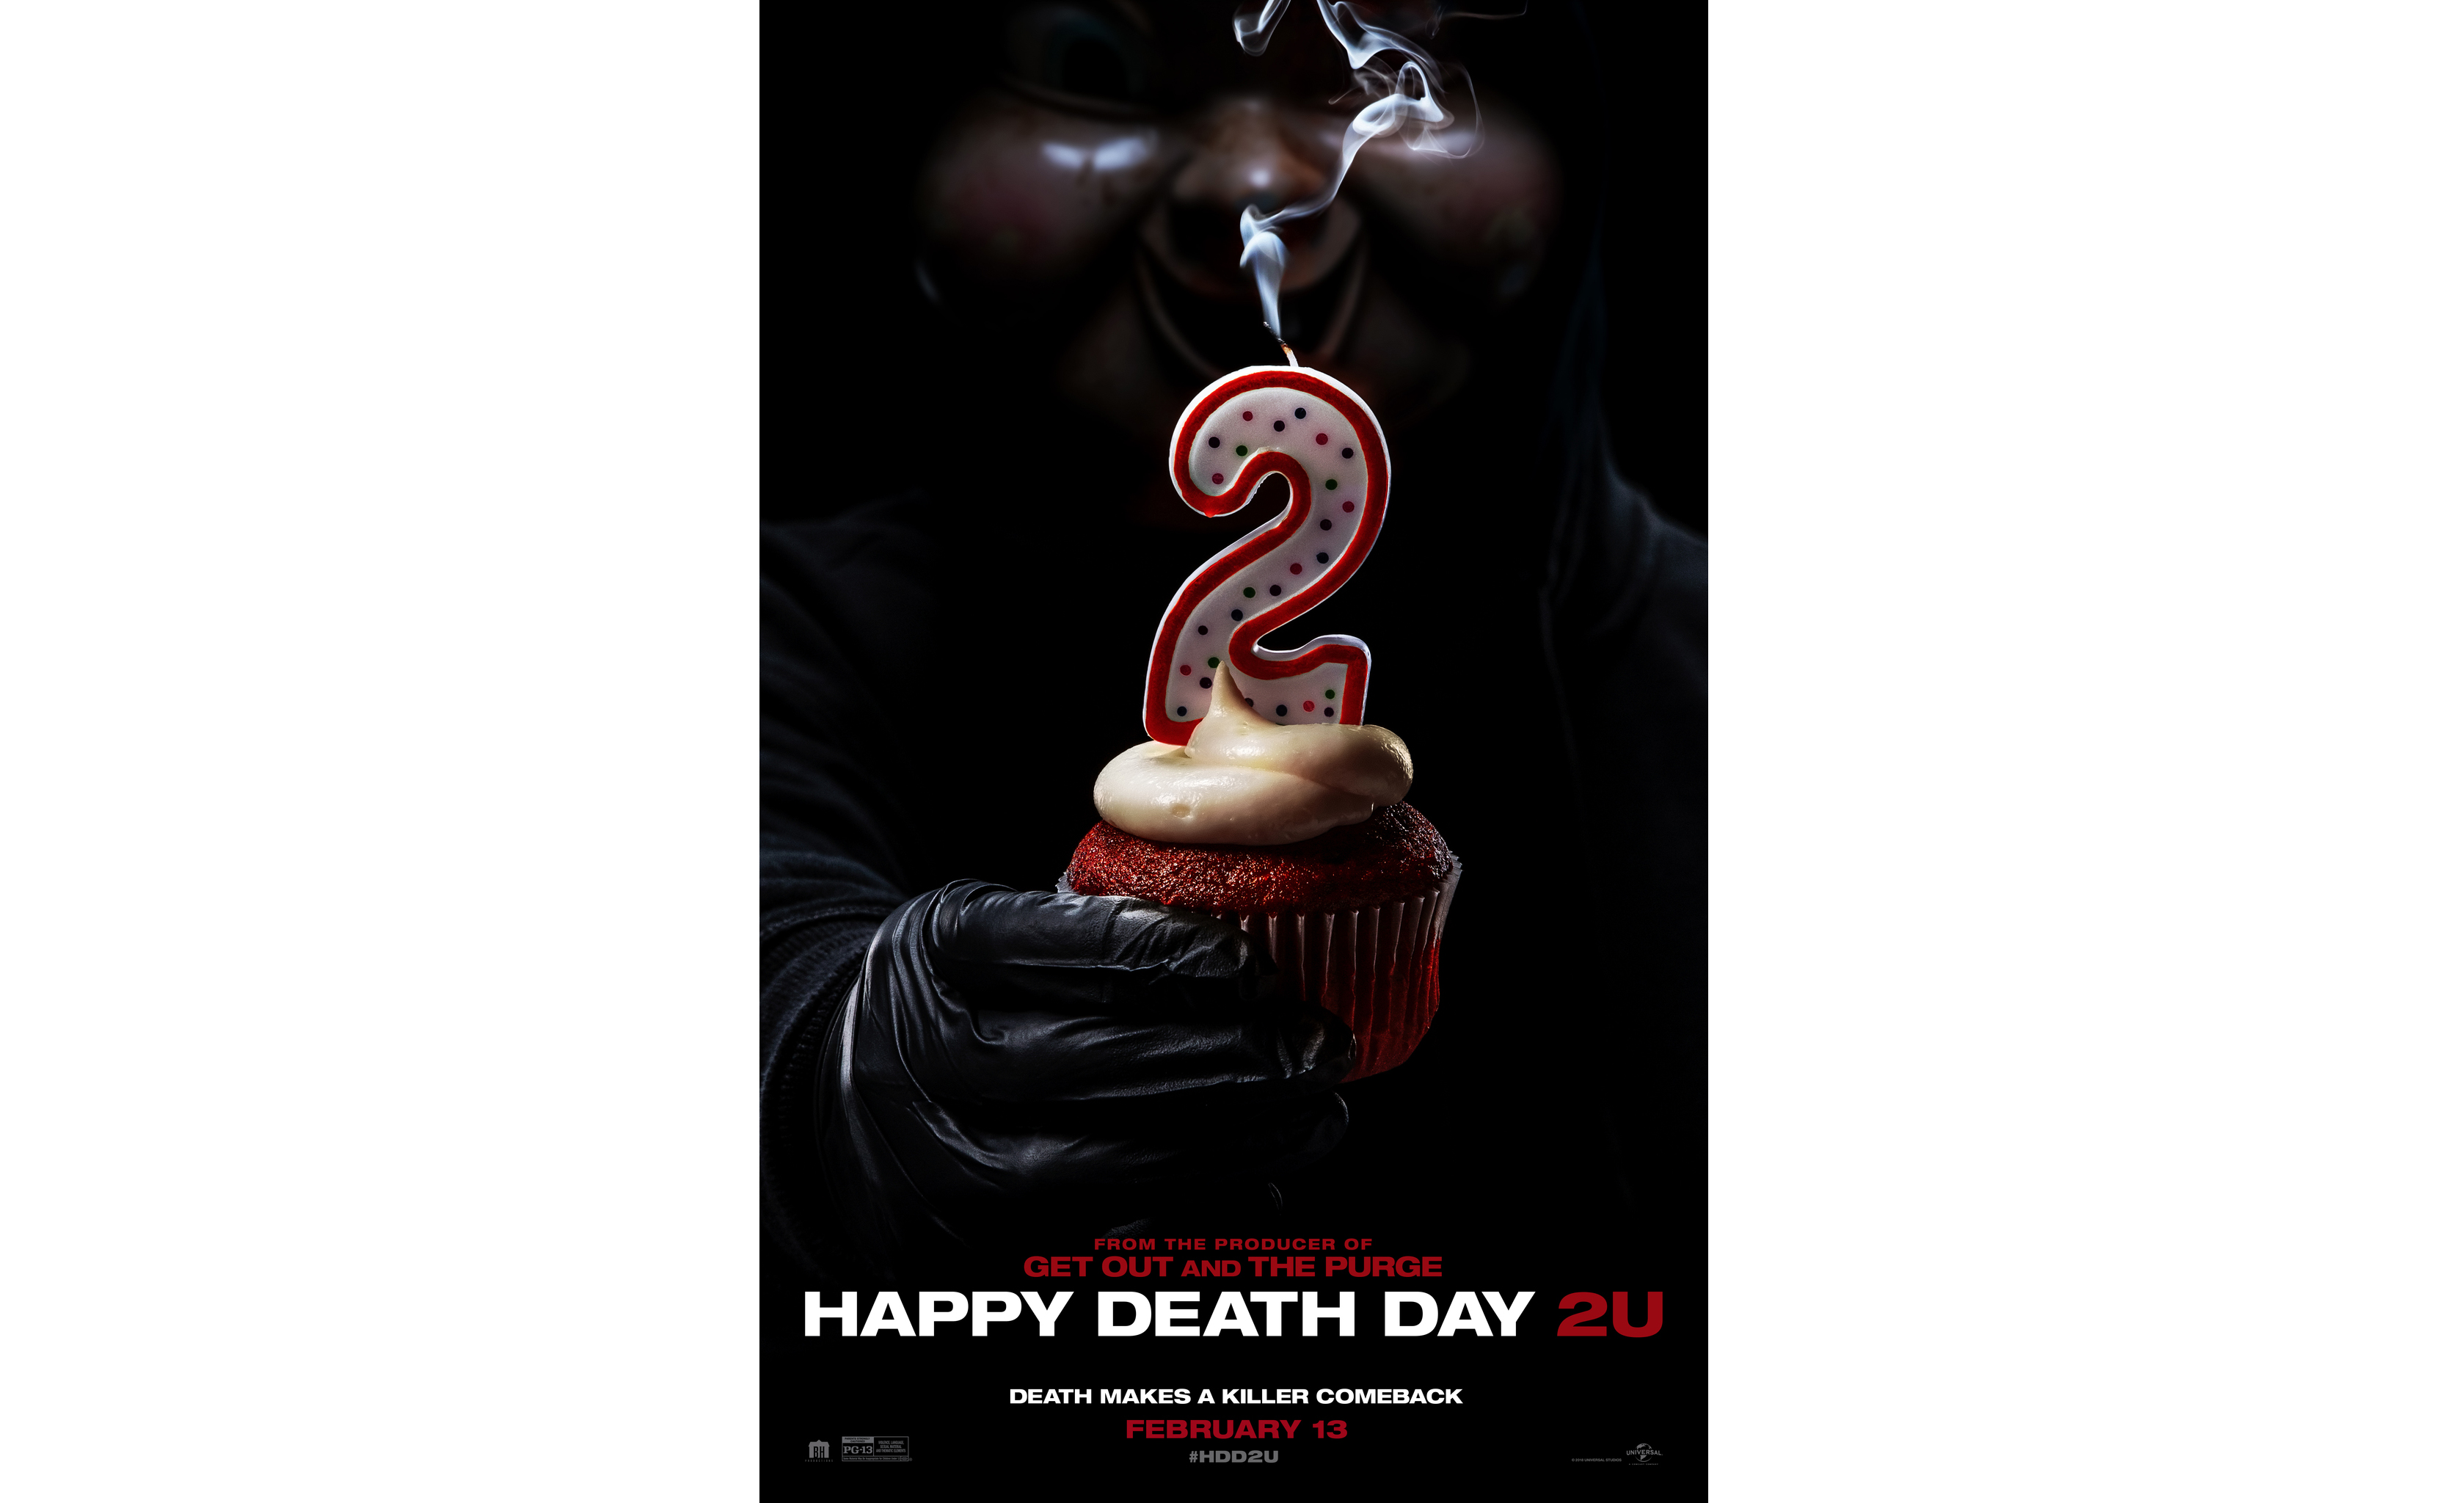 Try These Happy Death Day 2u Movie 2019